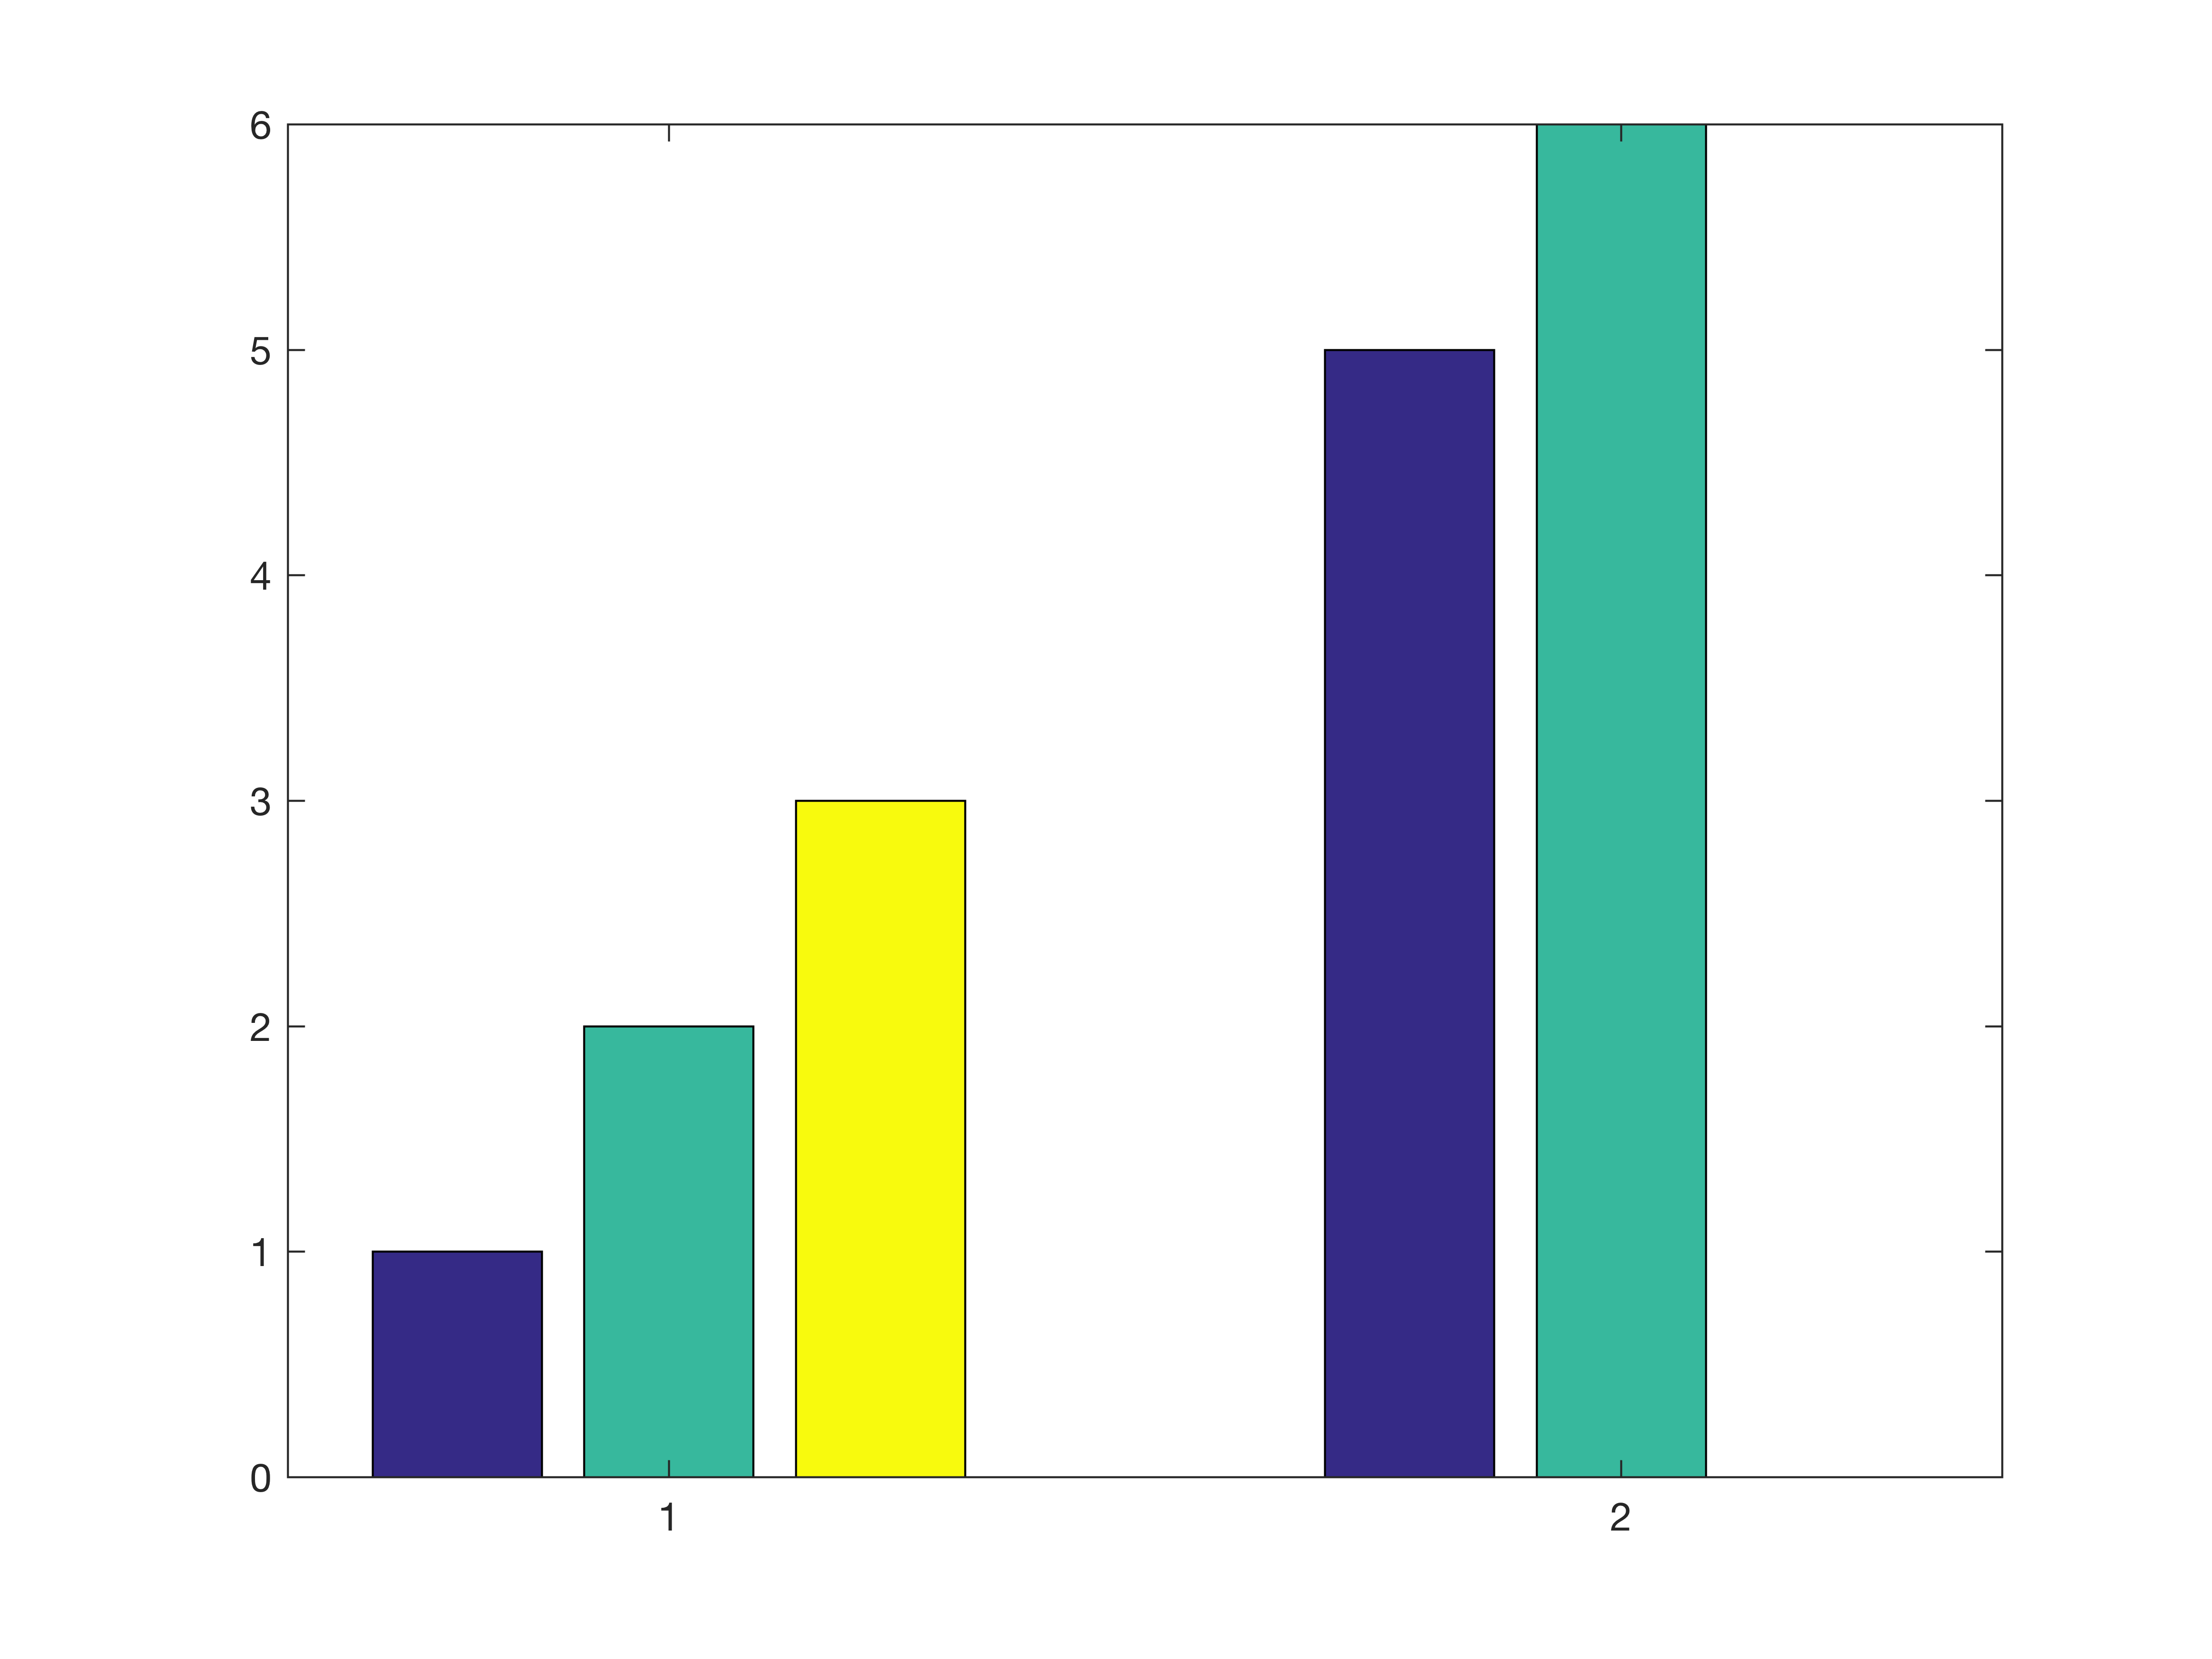 How to make a grouped bar graph with varying number of bars per ...